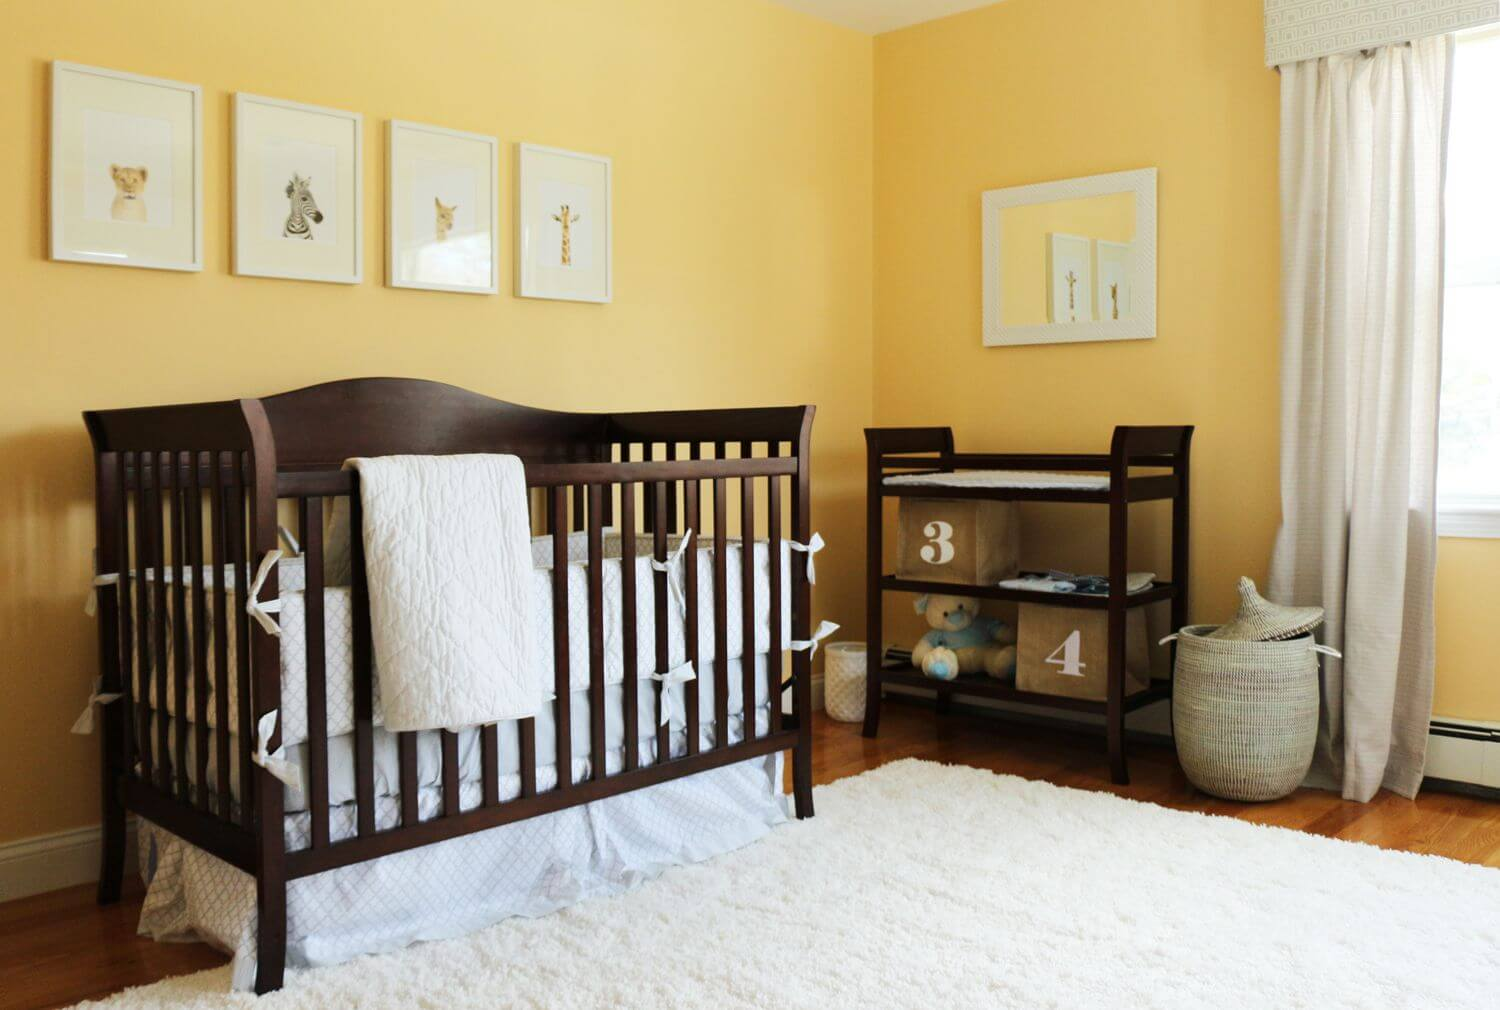 Baby cribs with matching dresser - Banana Yellow Walls Stand Over Natural Hardwood Flooring With Thick Shag White Rug In This Nursery